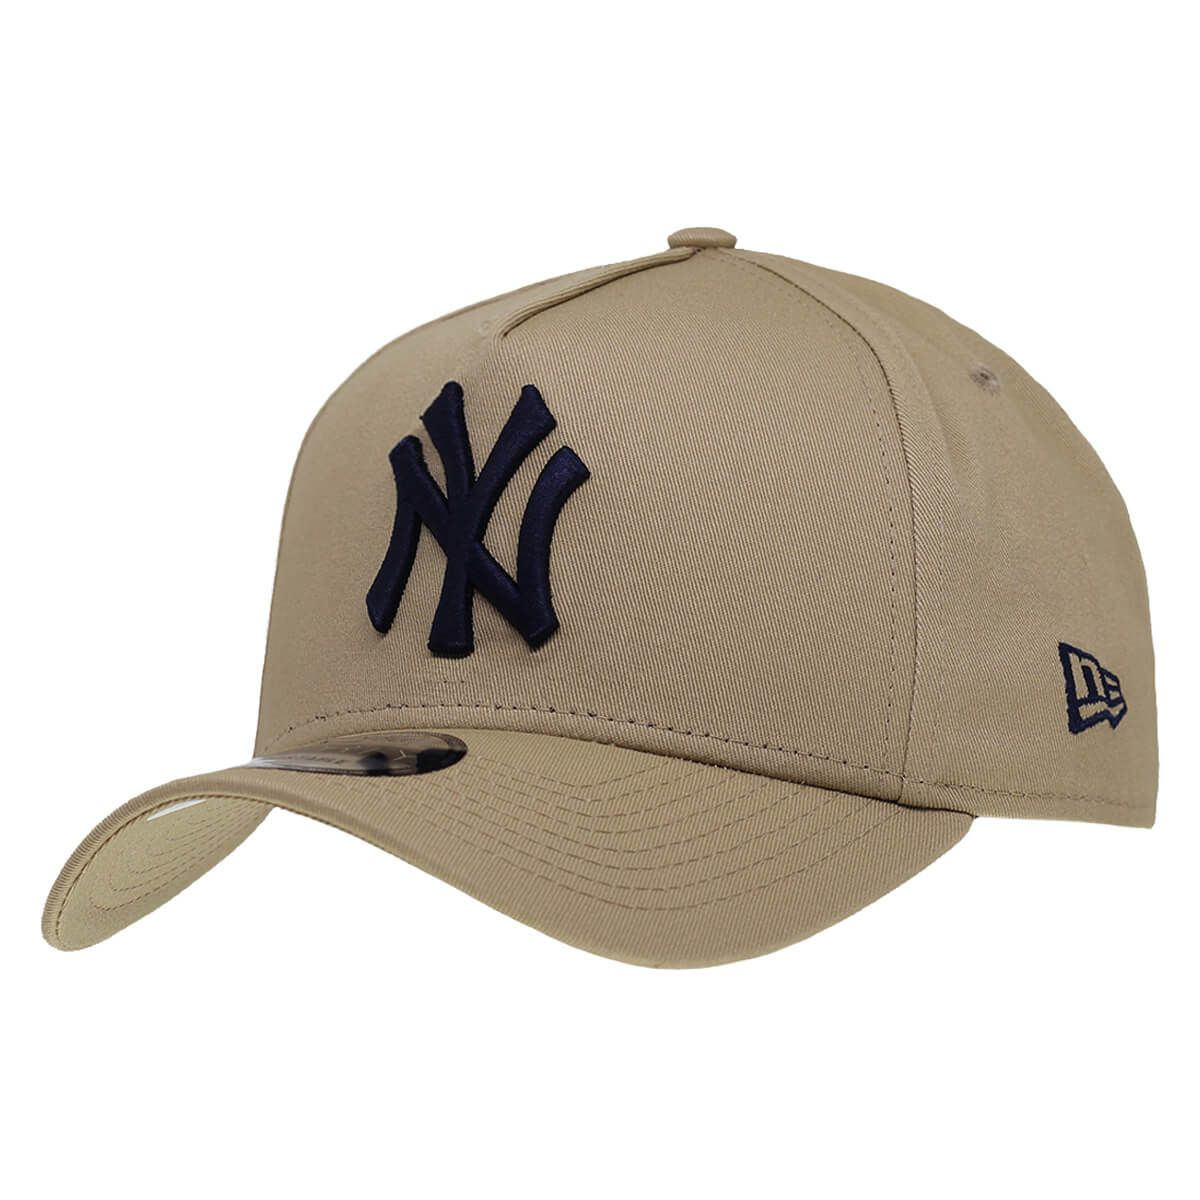 Boné New Era Aba Curva 940 SN MLB NY Yankees AF Bicolors Marrom Claro